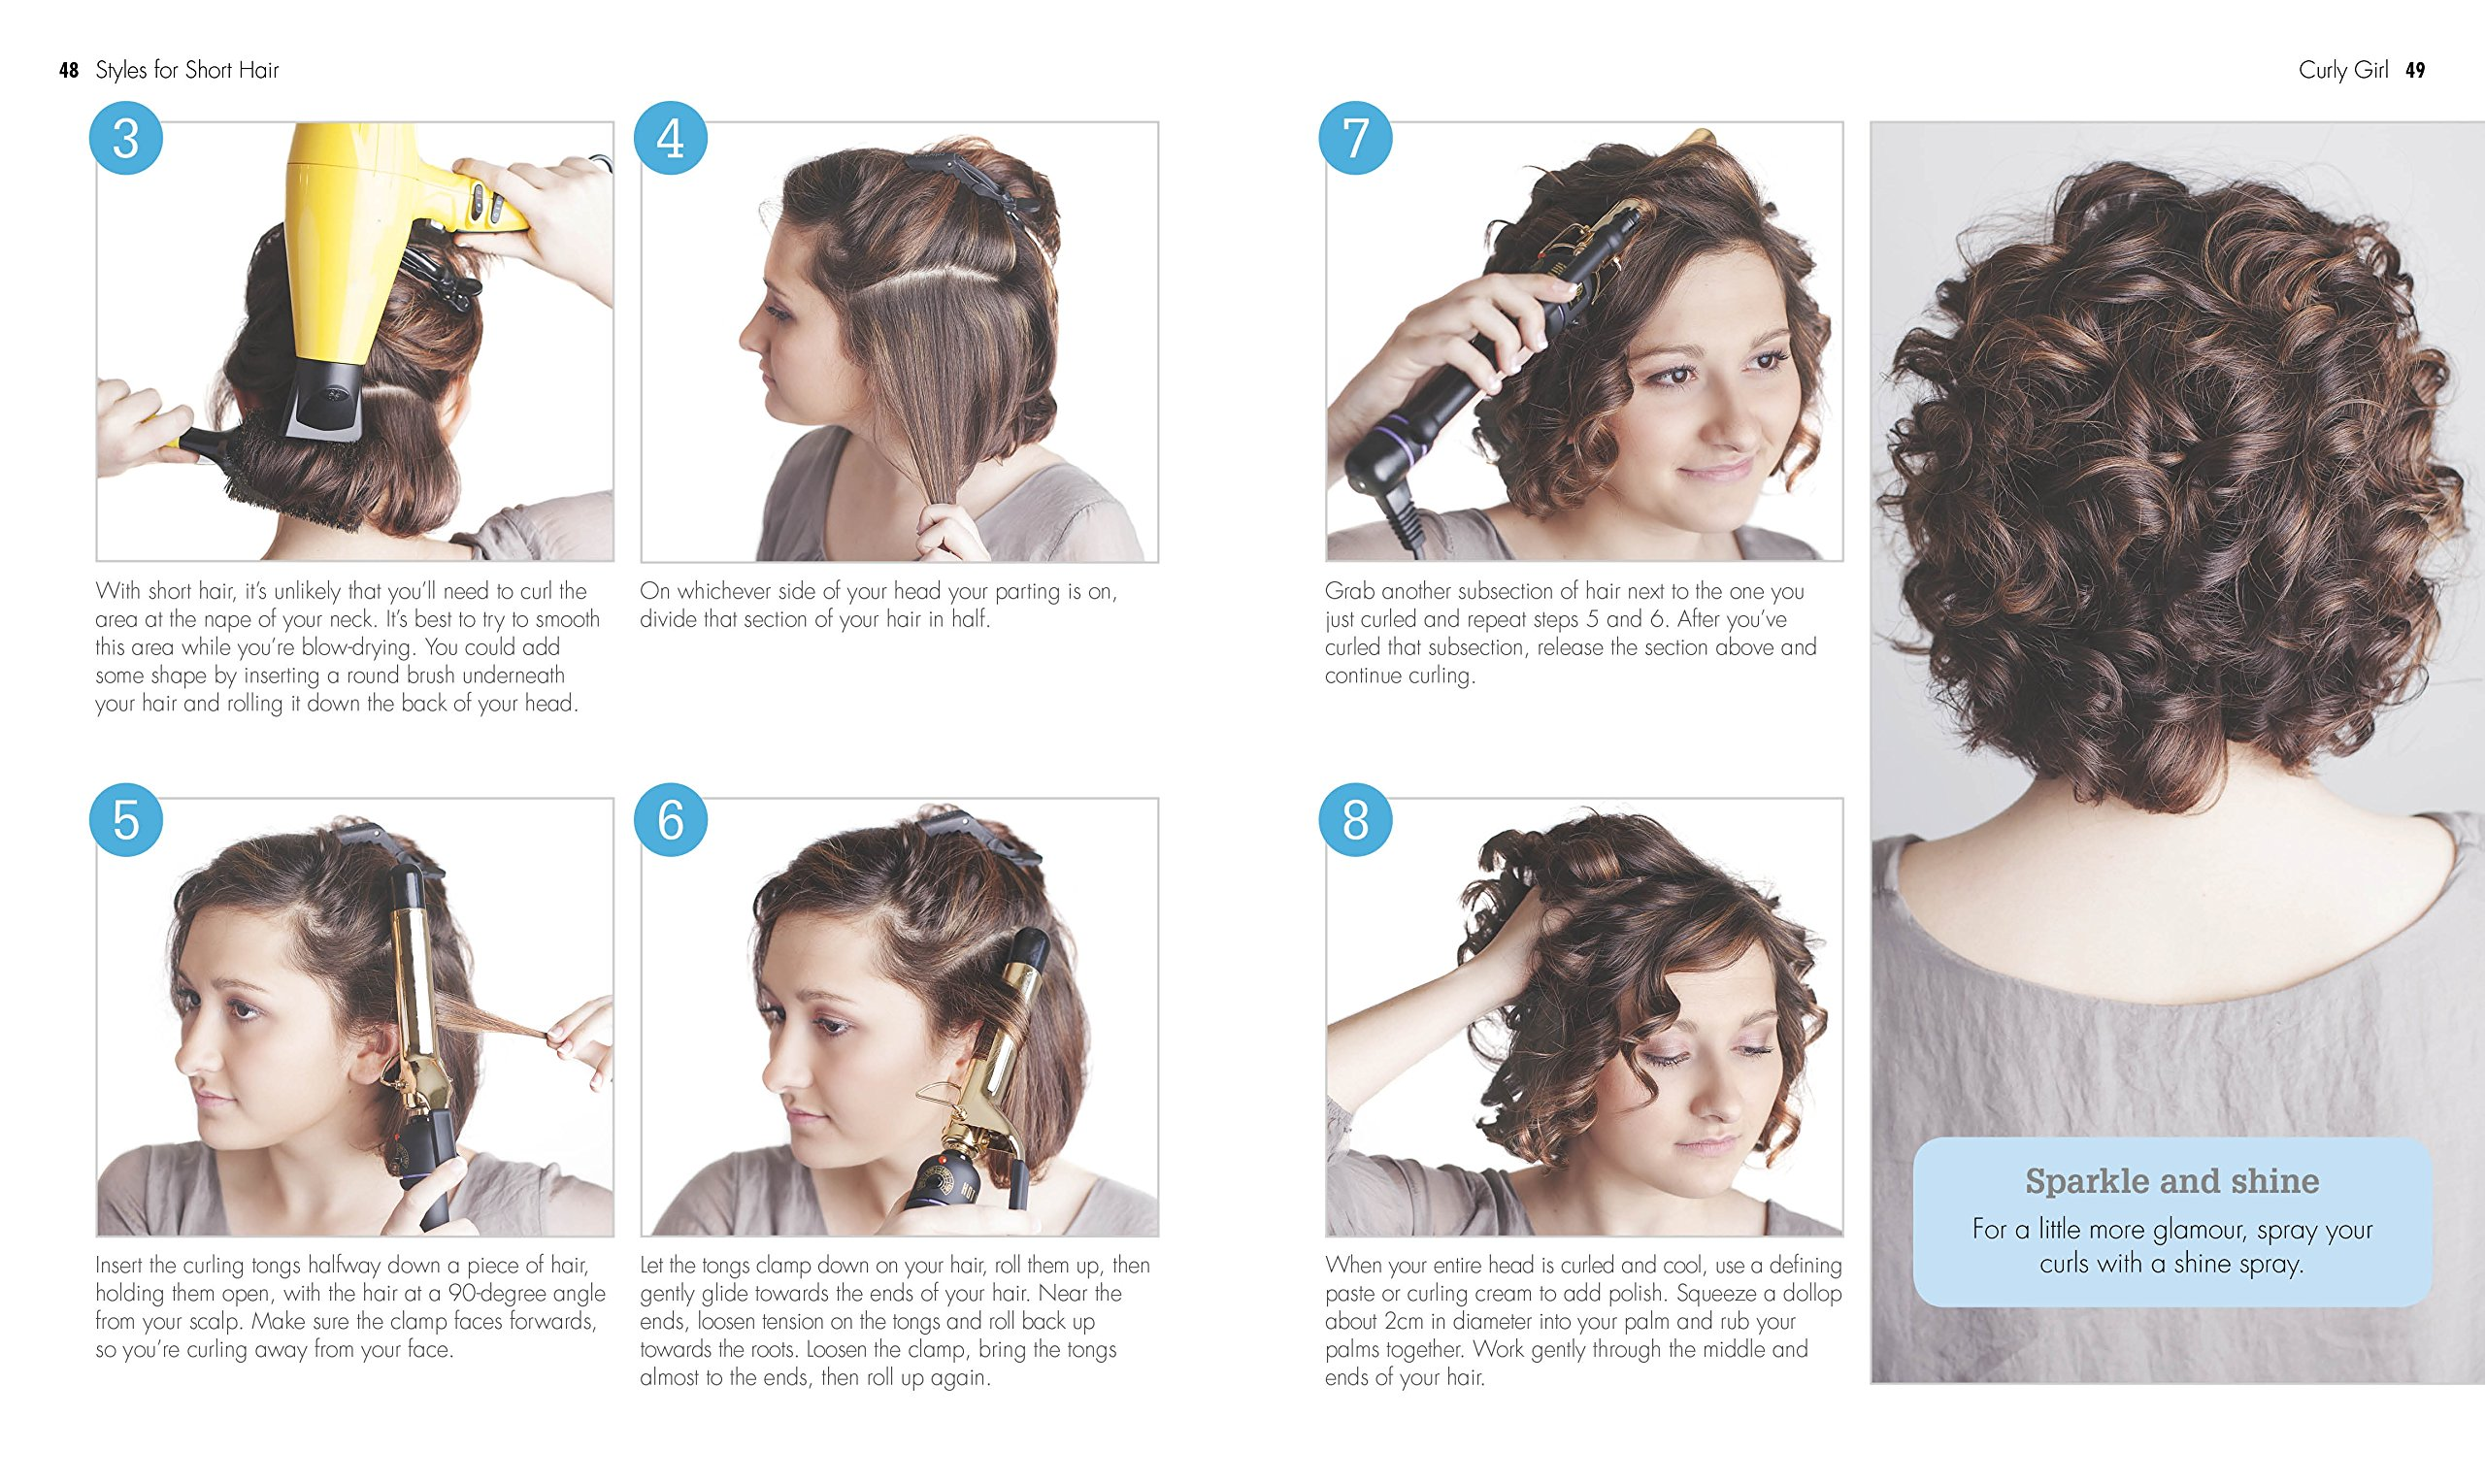 Style Your Hair (Try It!): Amazon.co.uk: DK: 9780241237267: Books